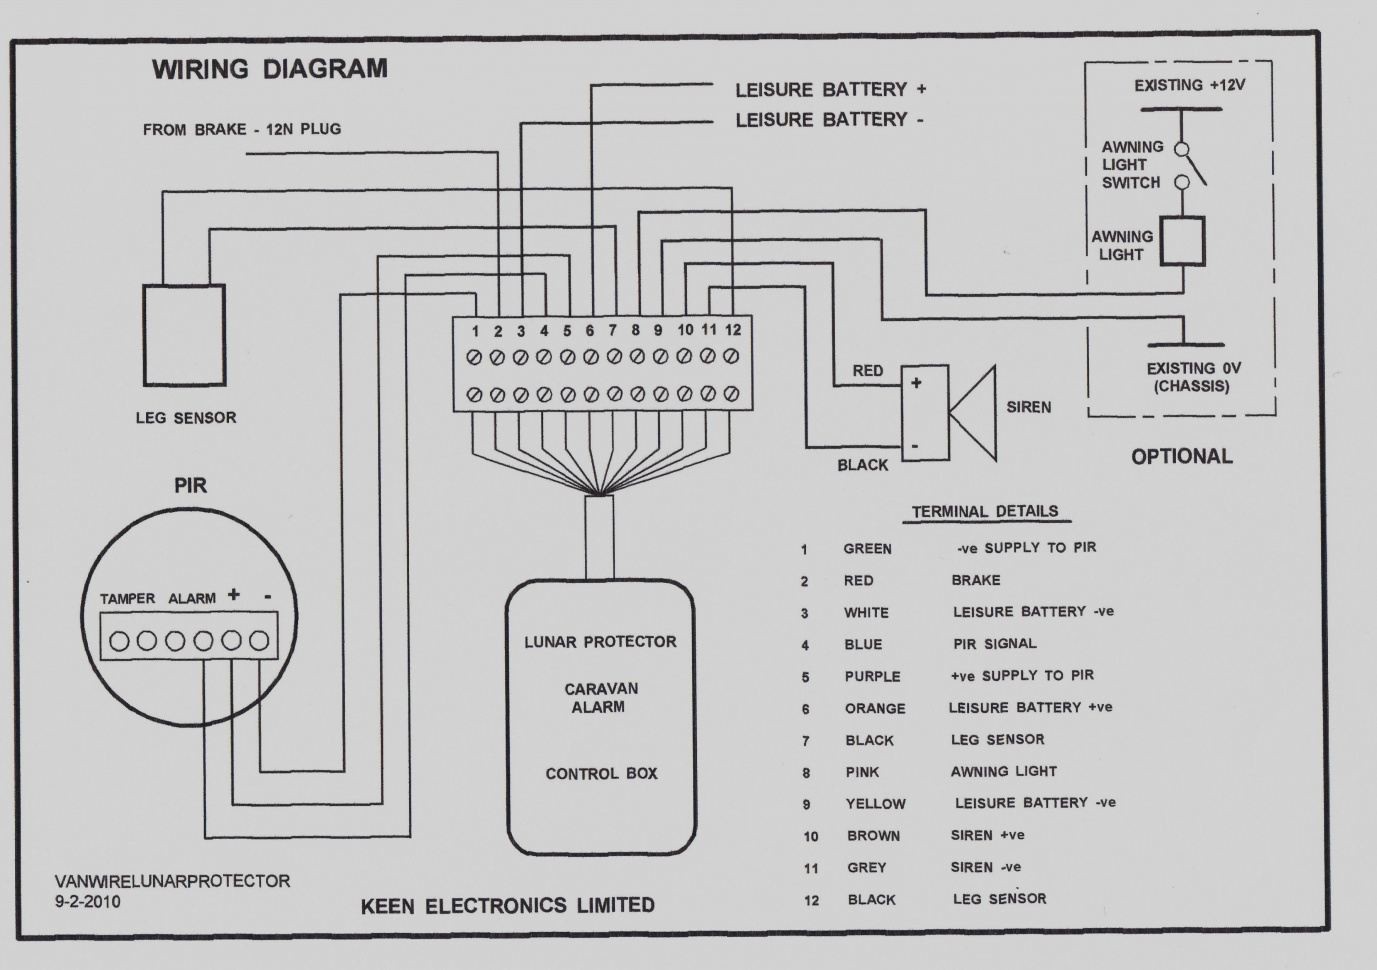 Wiring Diagram For Electric Awning - Well Detailed Wiring Diagrams •